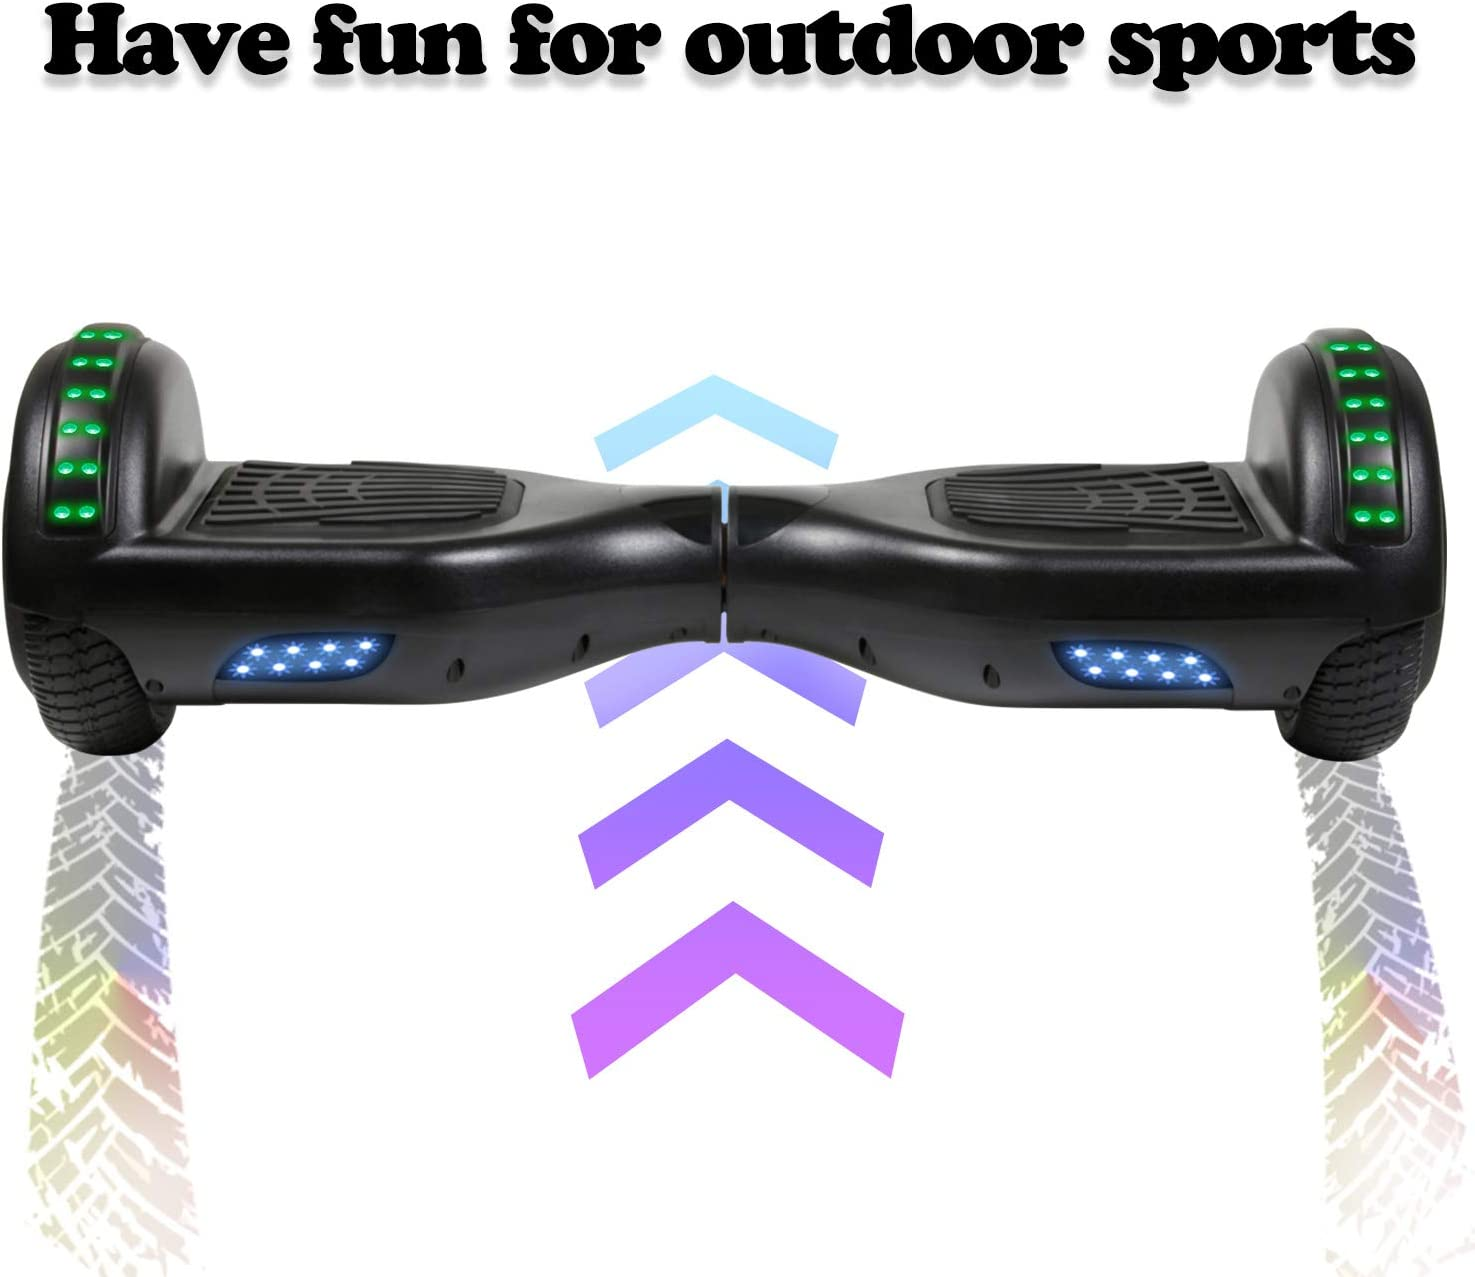 11 Best Hoverboard For Kids (2021 Reviews & Buying Guide) 6